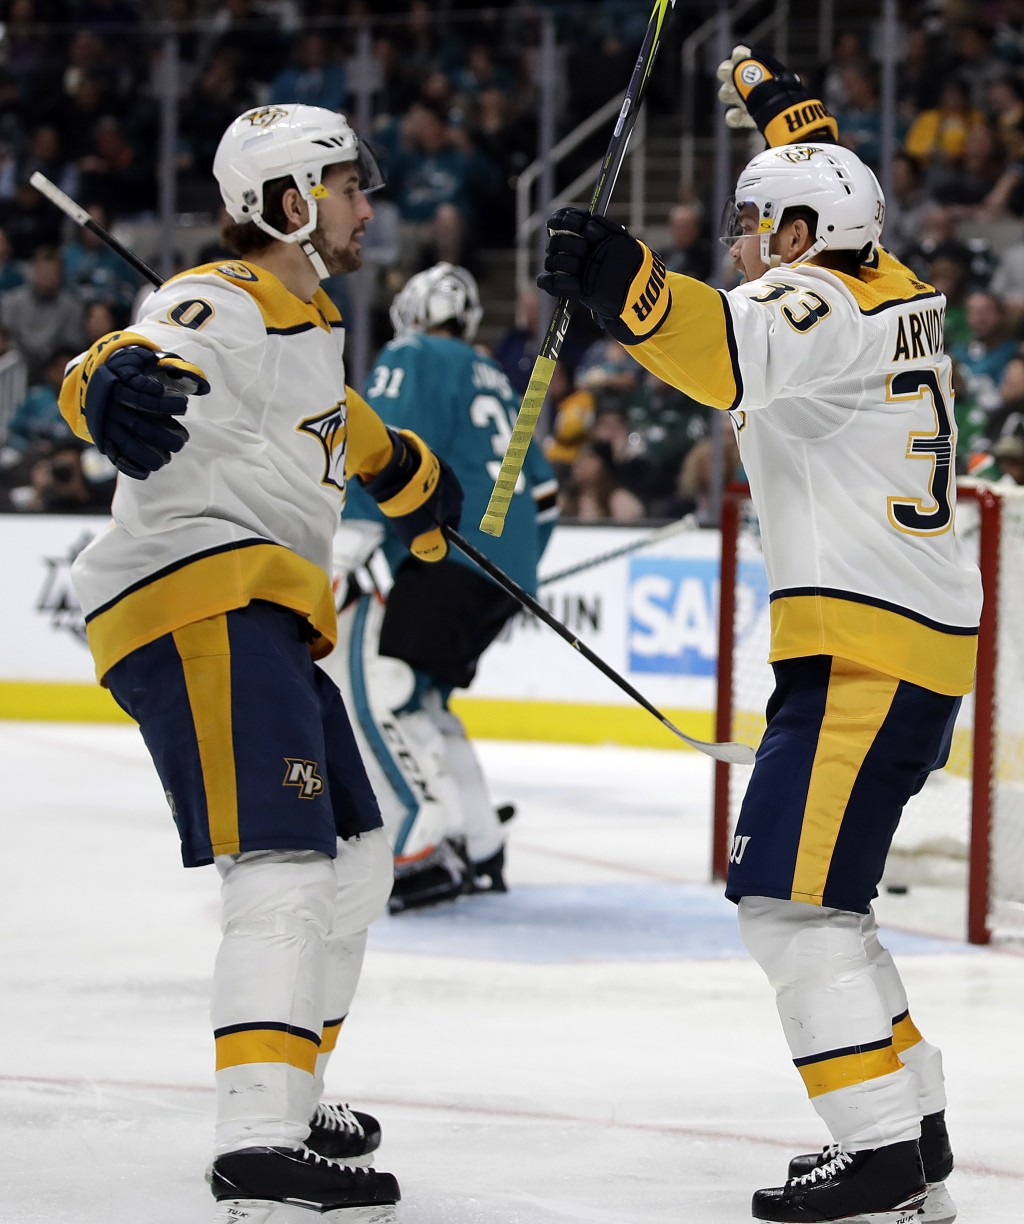 Nashville Predators' Viktor Arvidsson, right, celebrates with Filip Forsberg after scoring a goal against the San Jose Sharks during the second period